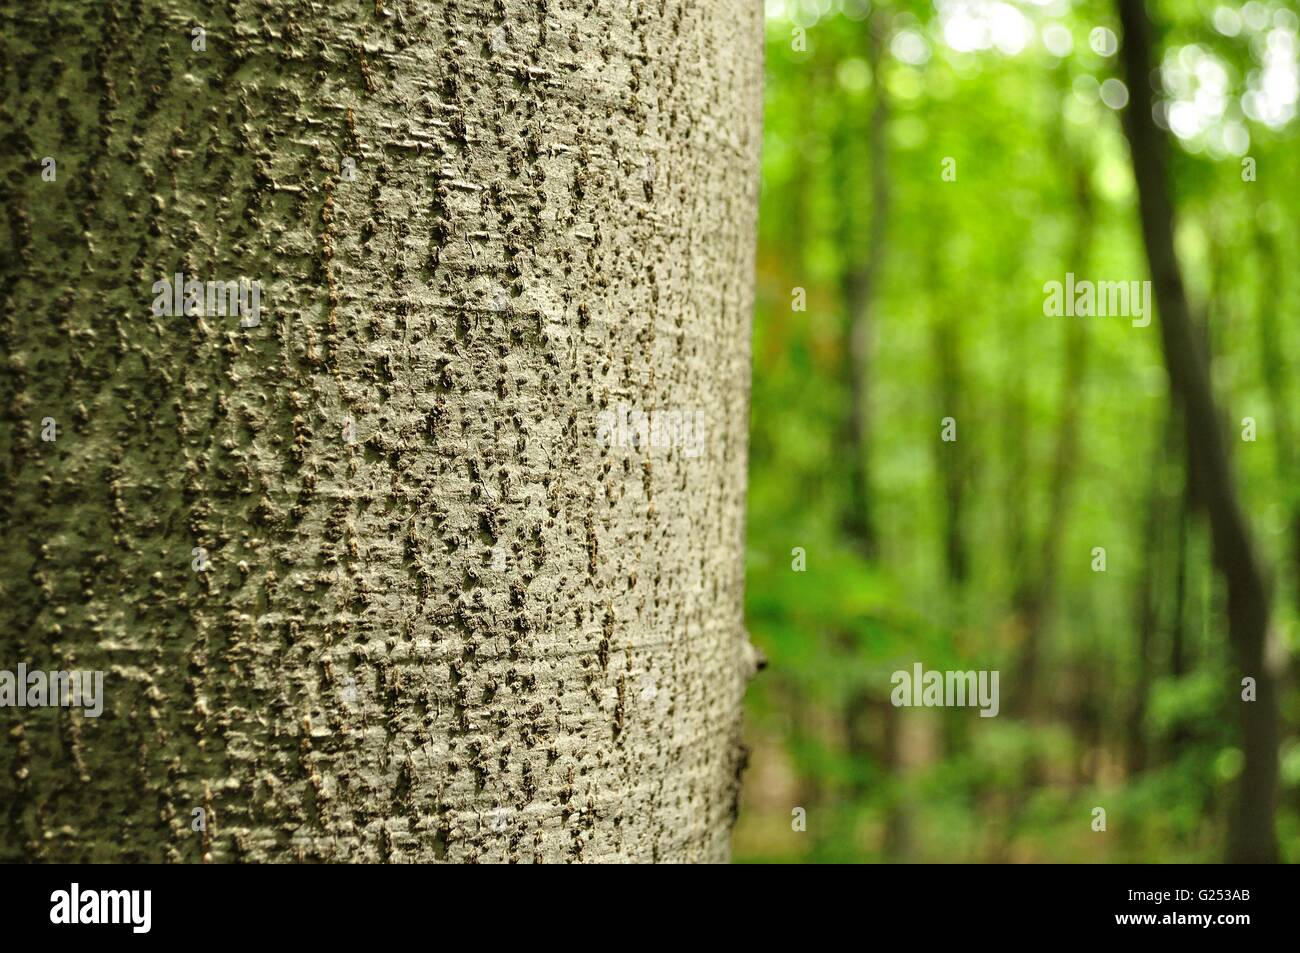 Detail view of tree trunk with blurred forest in background - Stock Image